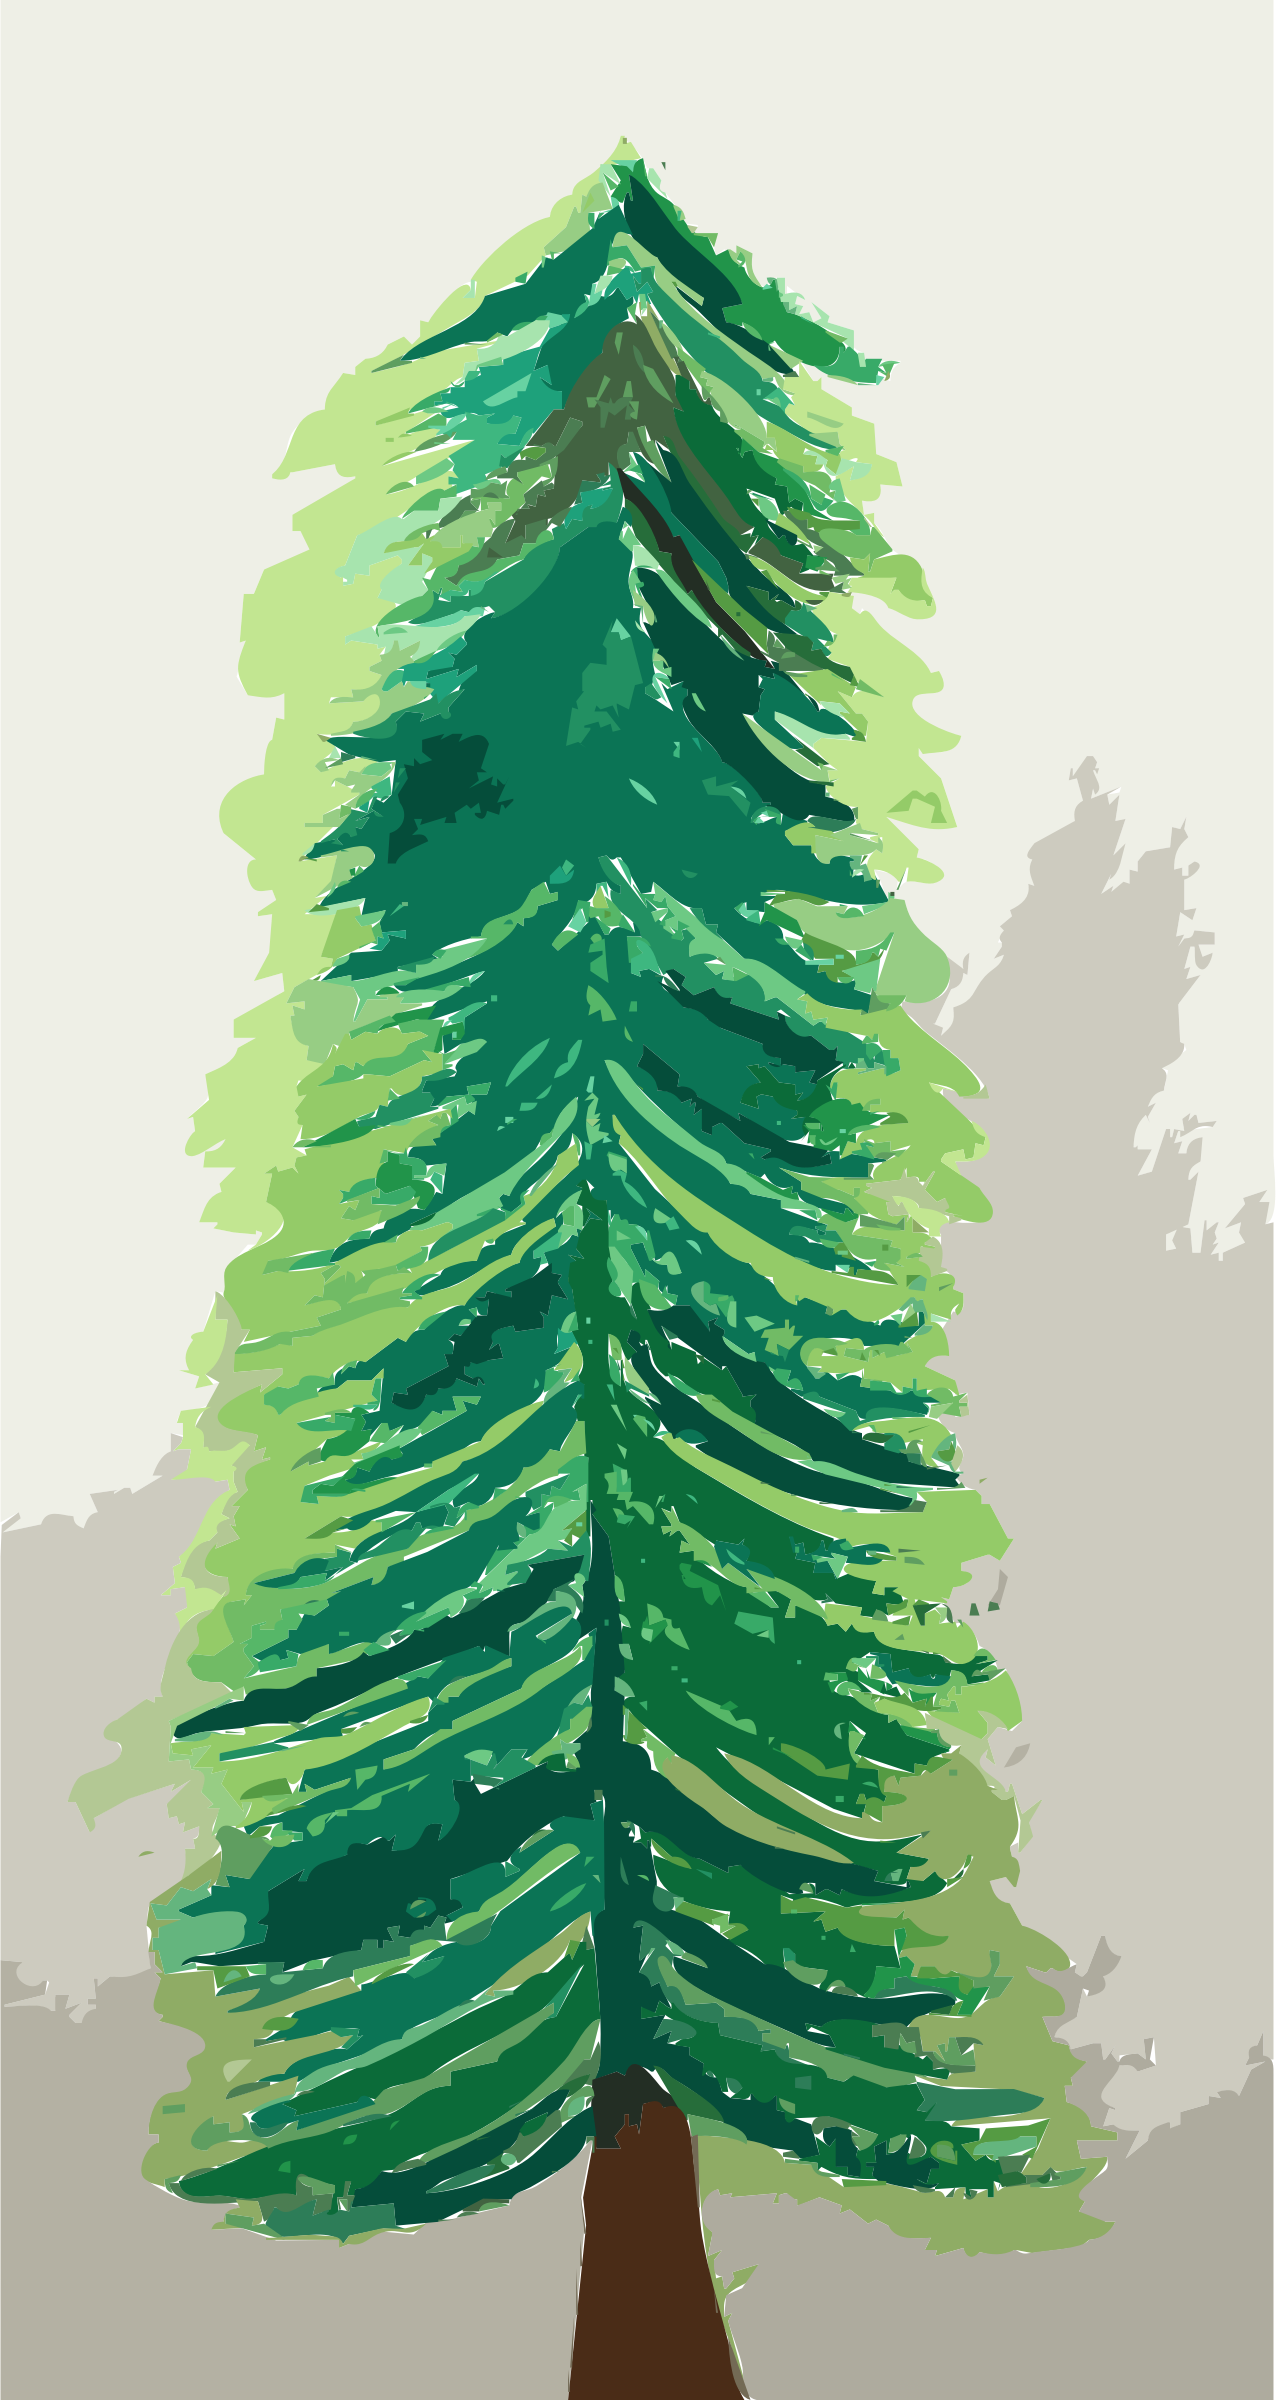 Painted Christmas Tree, untraced Vectorized by 5mvcfy+25epcyzr54tu0